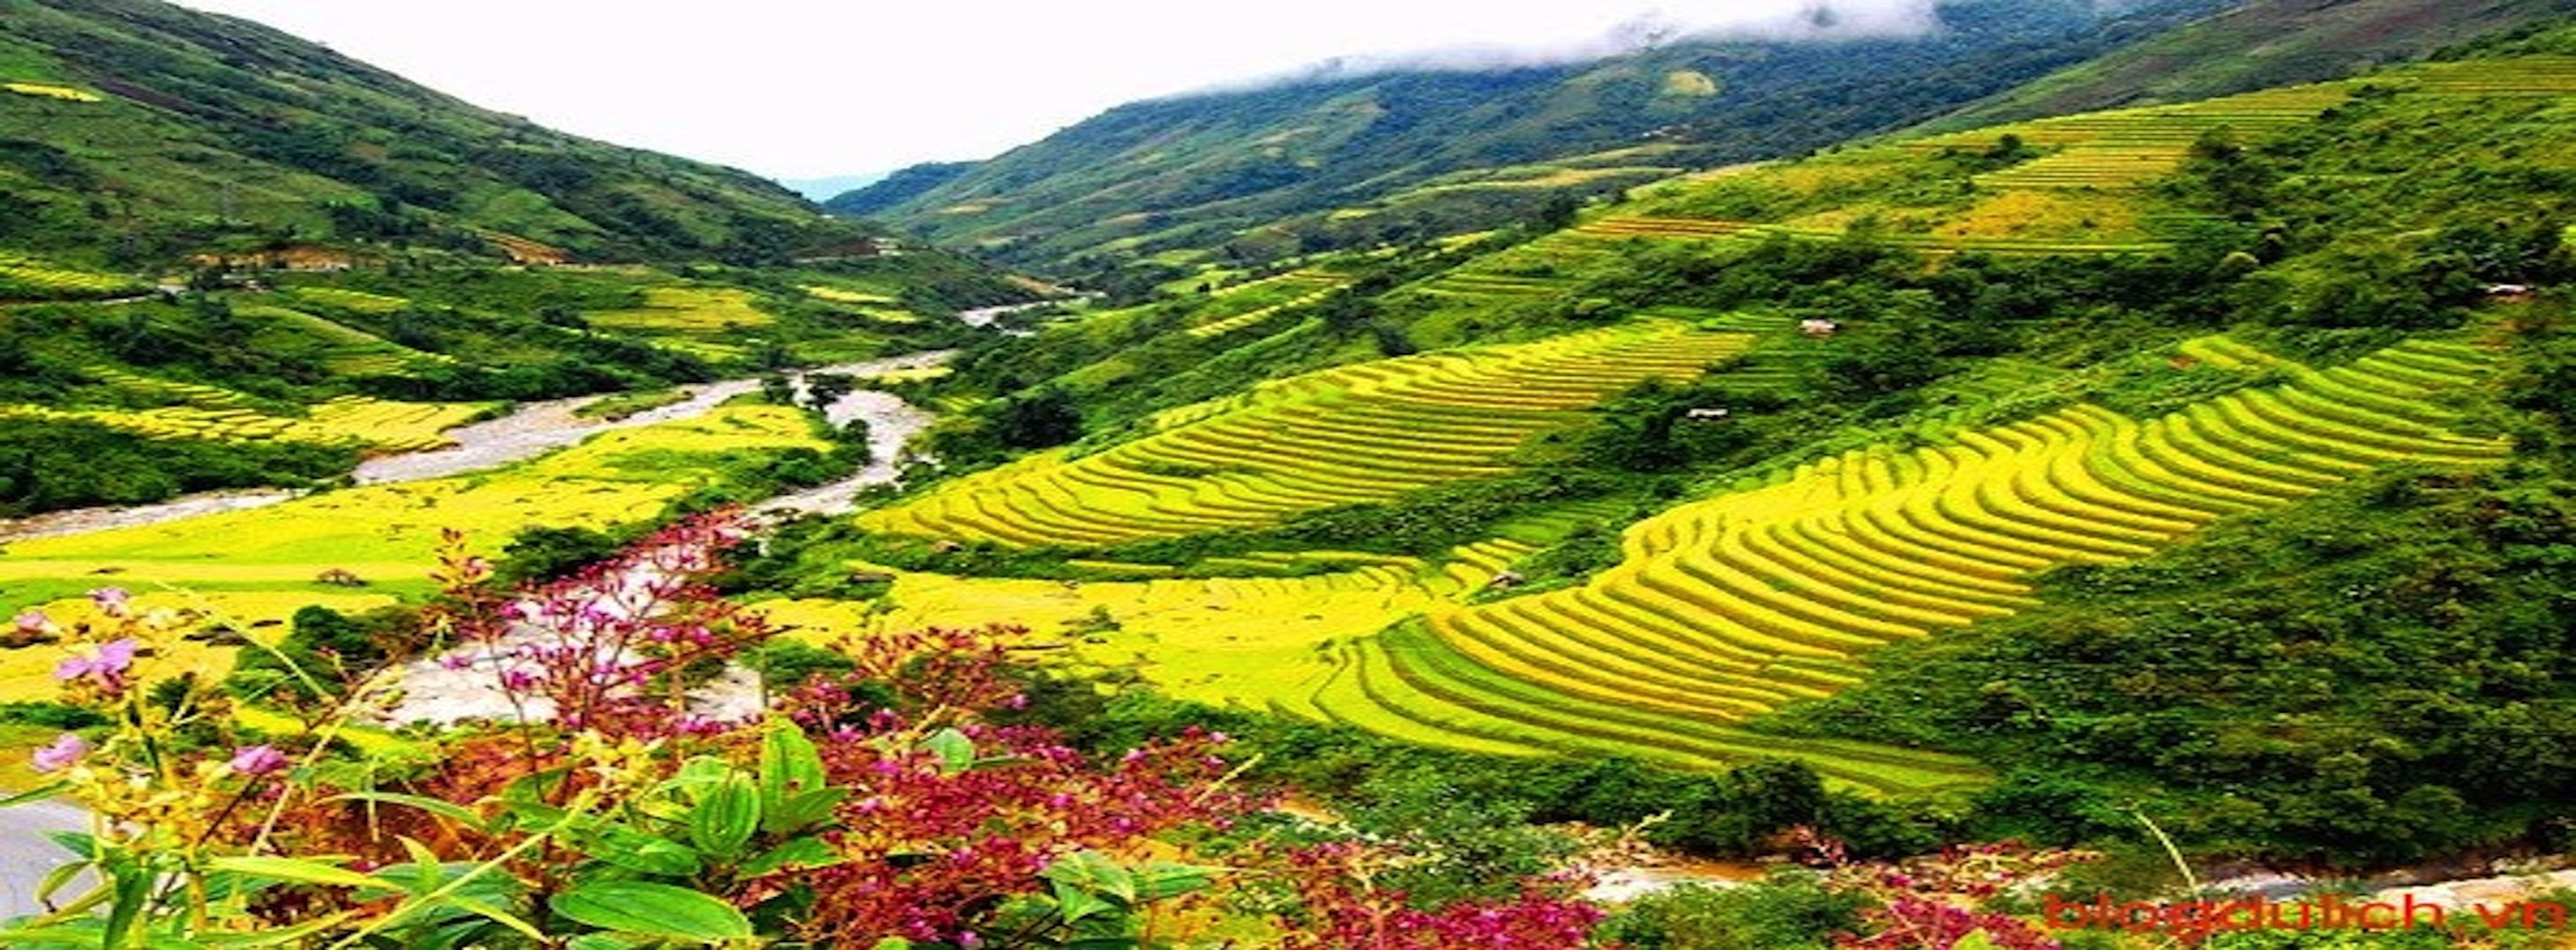 SAPA BY BUS 2 DAYS - 2 NIGHTS (1 NIGHT ON BUS, 1 NIGHT IN HOTEL)